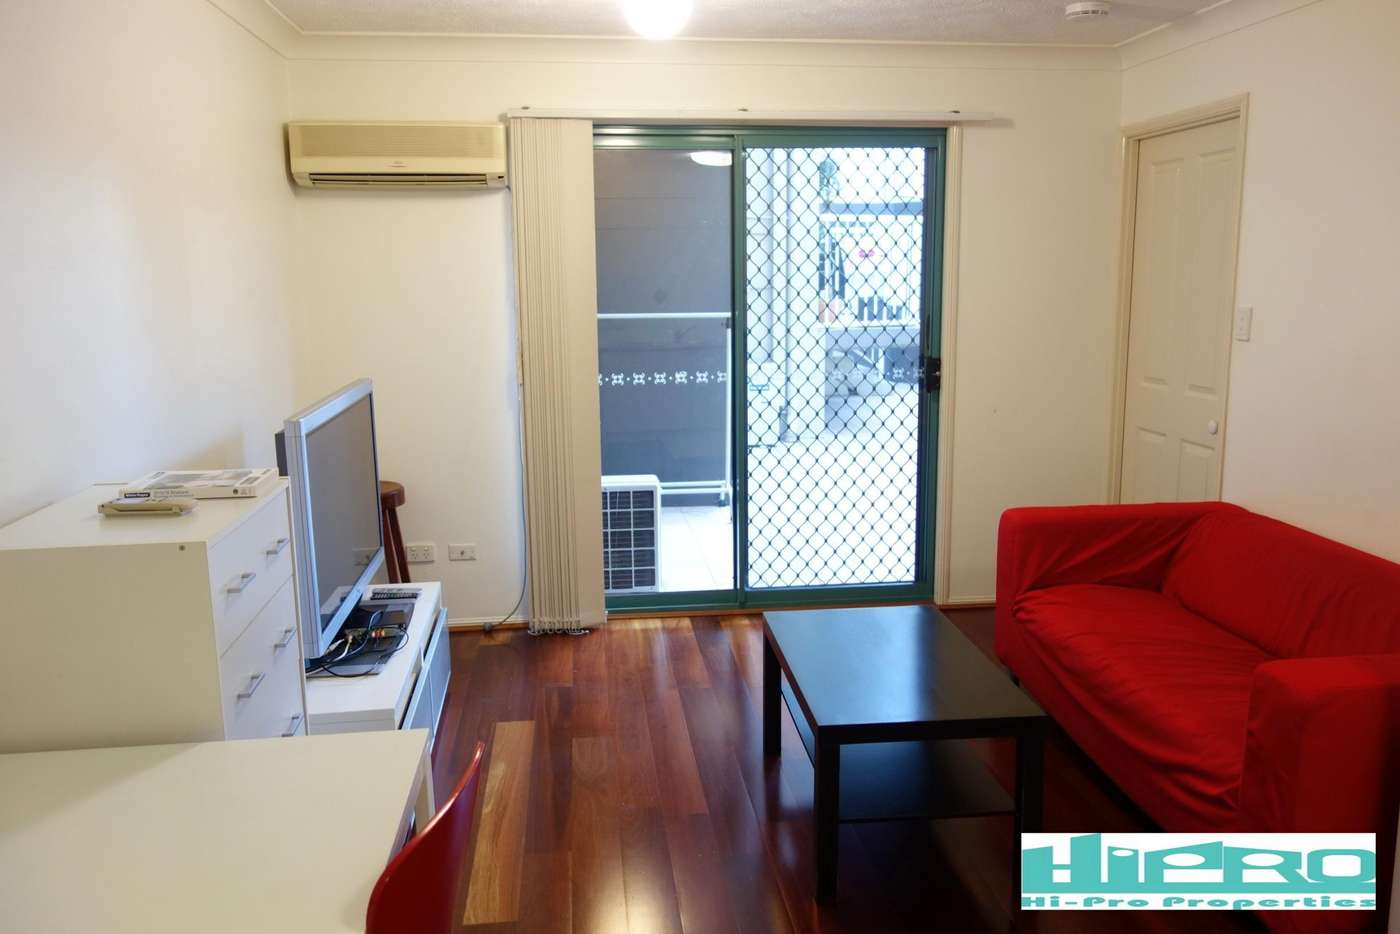 Main view of Homely apartment listing, 11/51 Leopard Street, Kangaroo Point QLD 4169